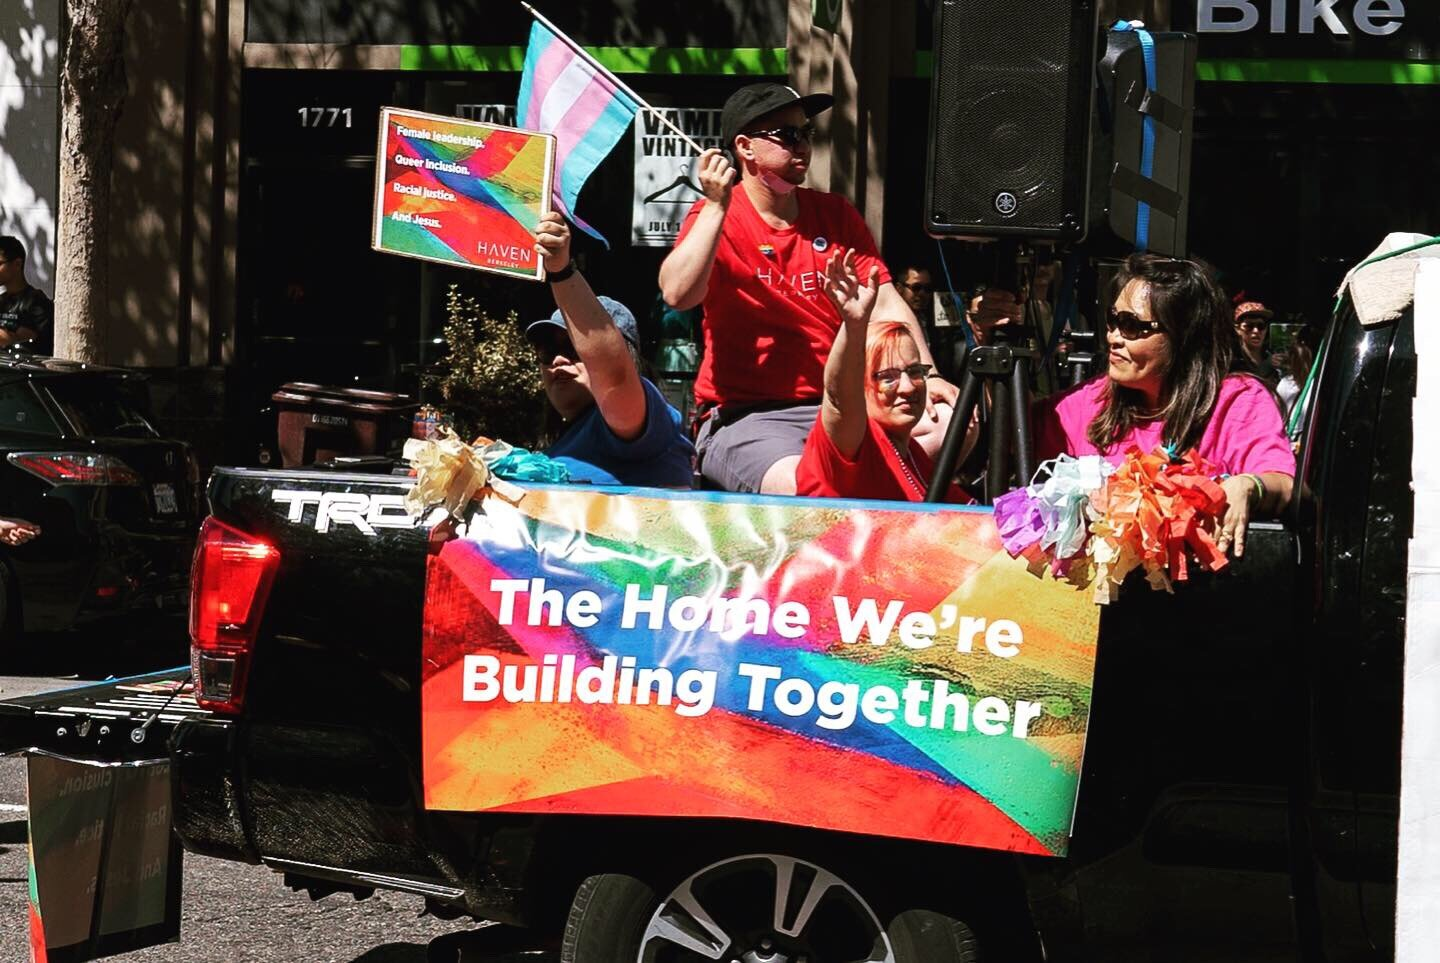 Haven at Oakland Pride, September 8, 2019